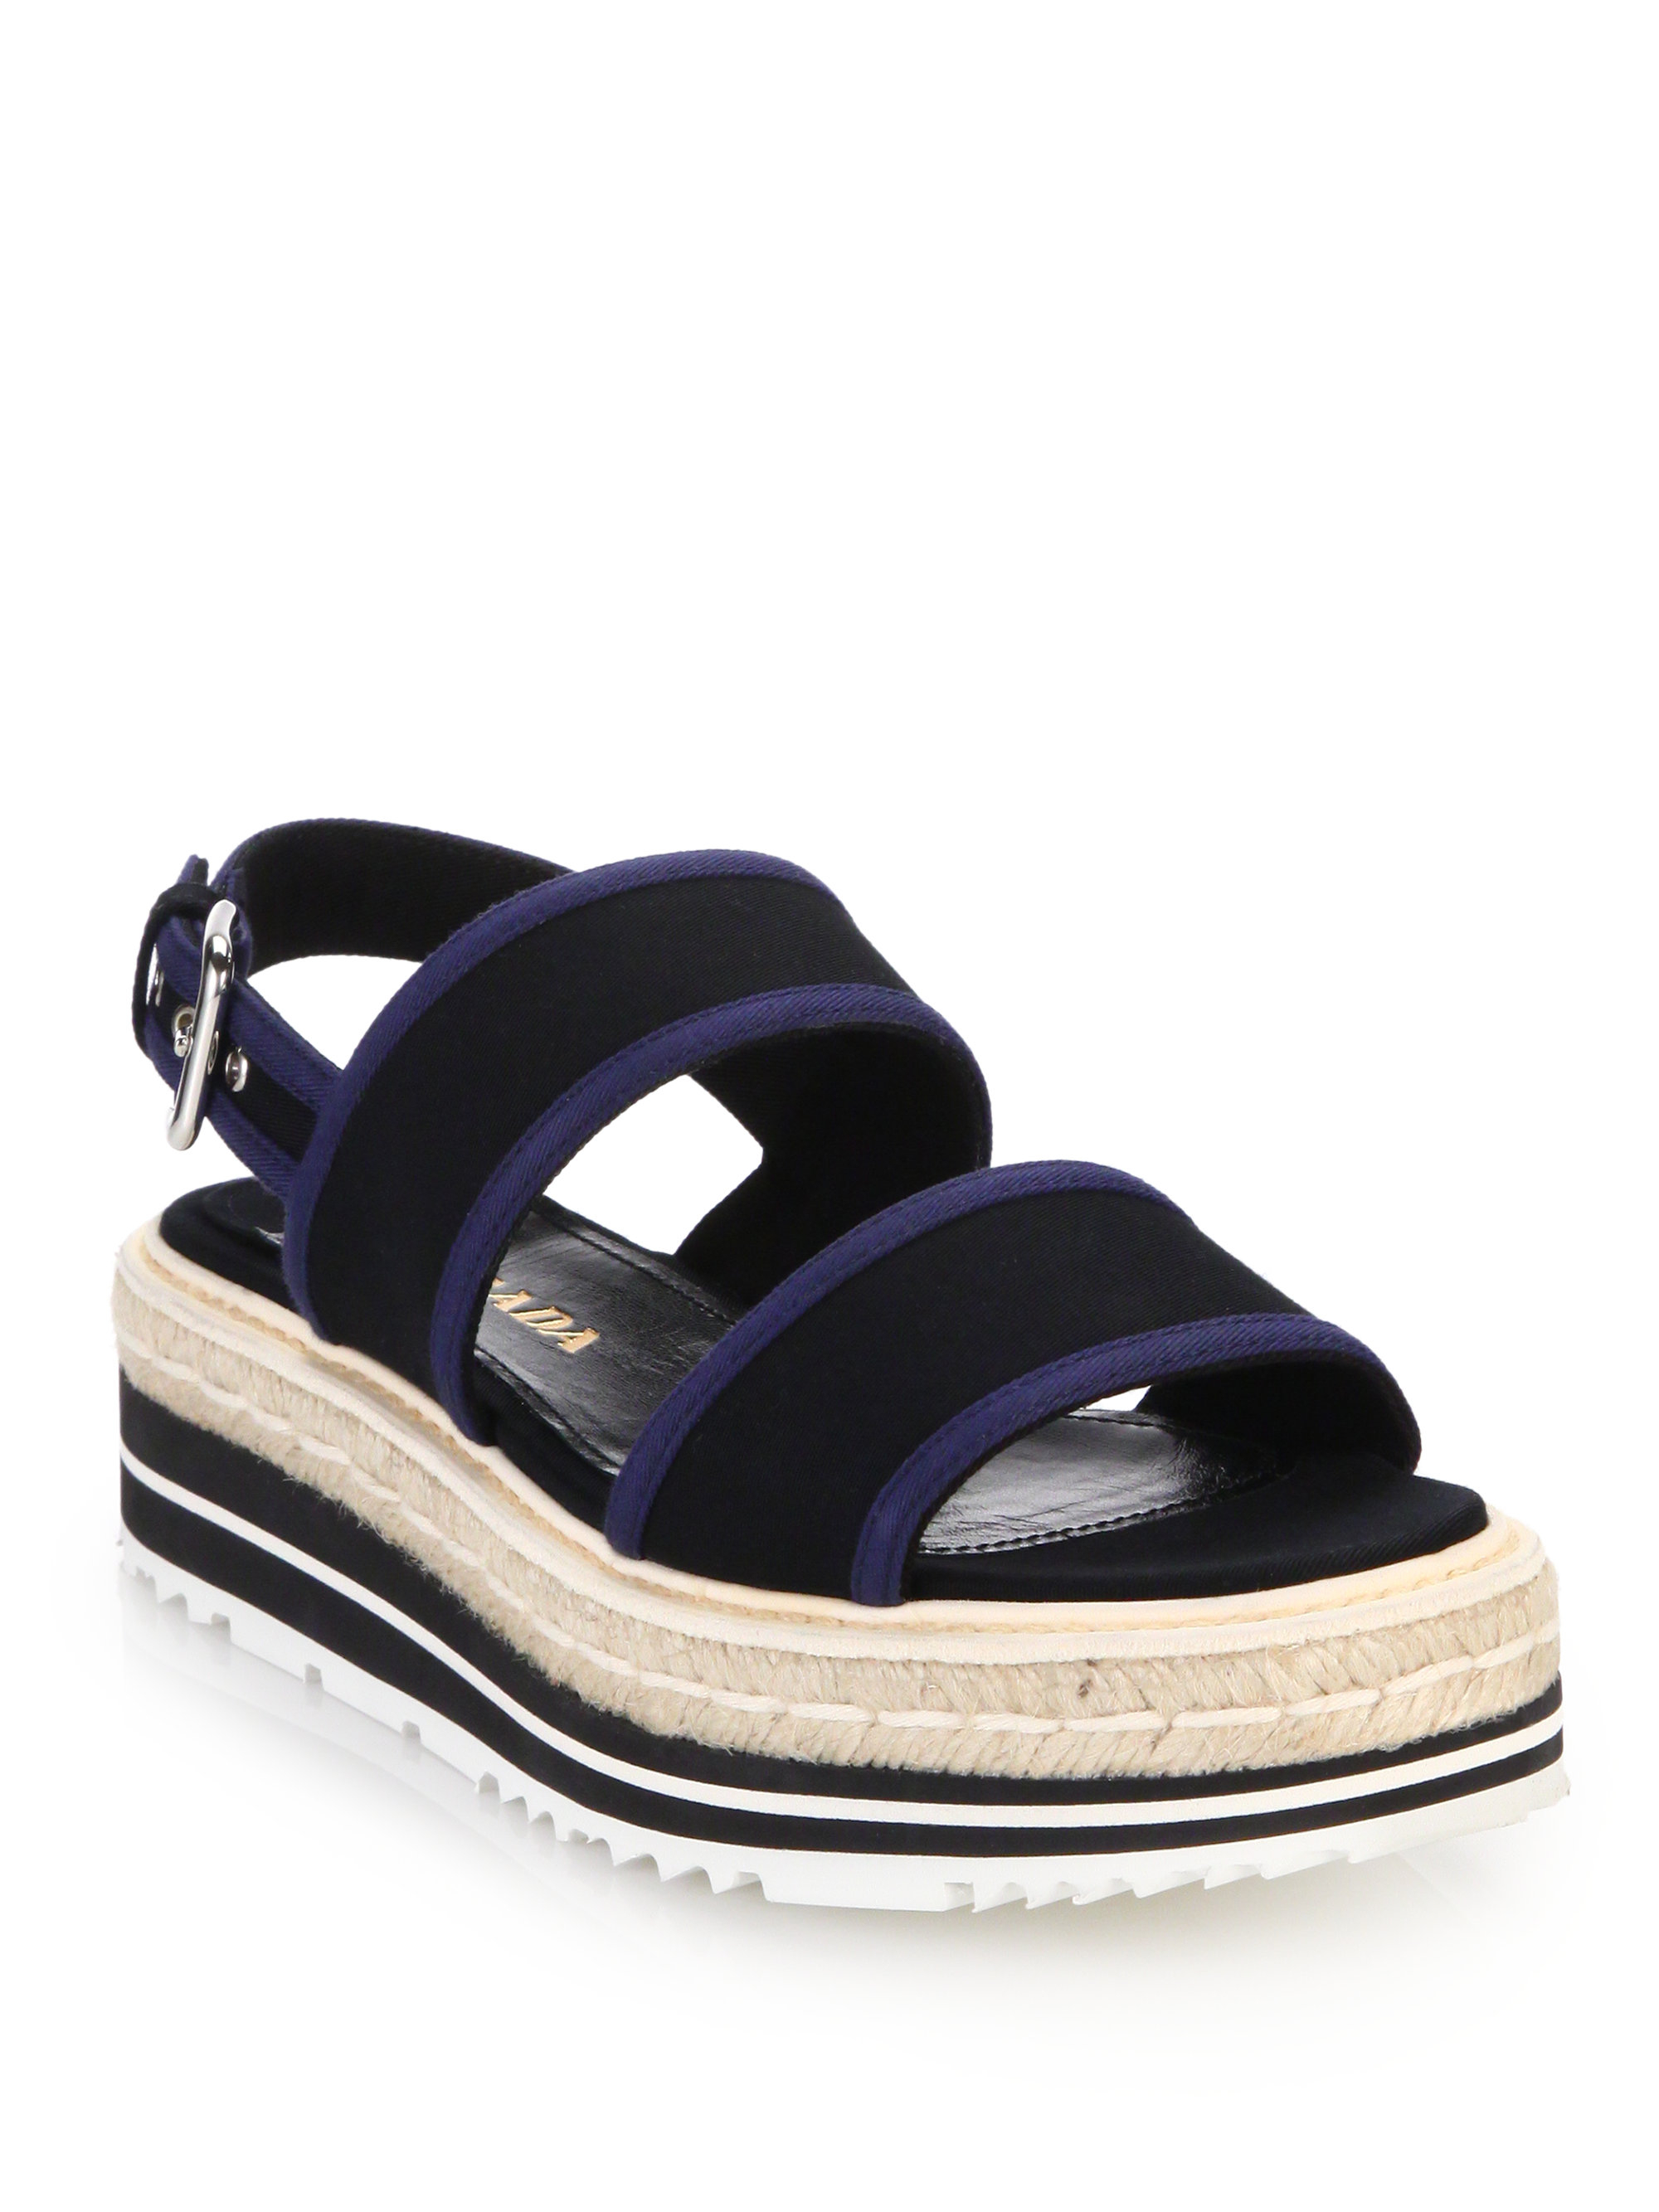 clearance get to buy sale cheap price Prada Canvas Flatform Espadrilles best seller cheap price discount online pdhpj4